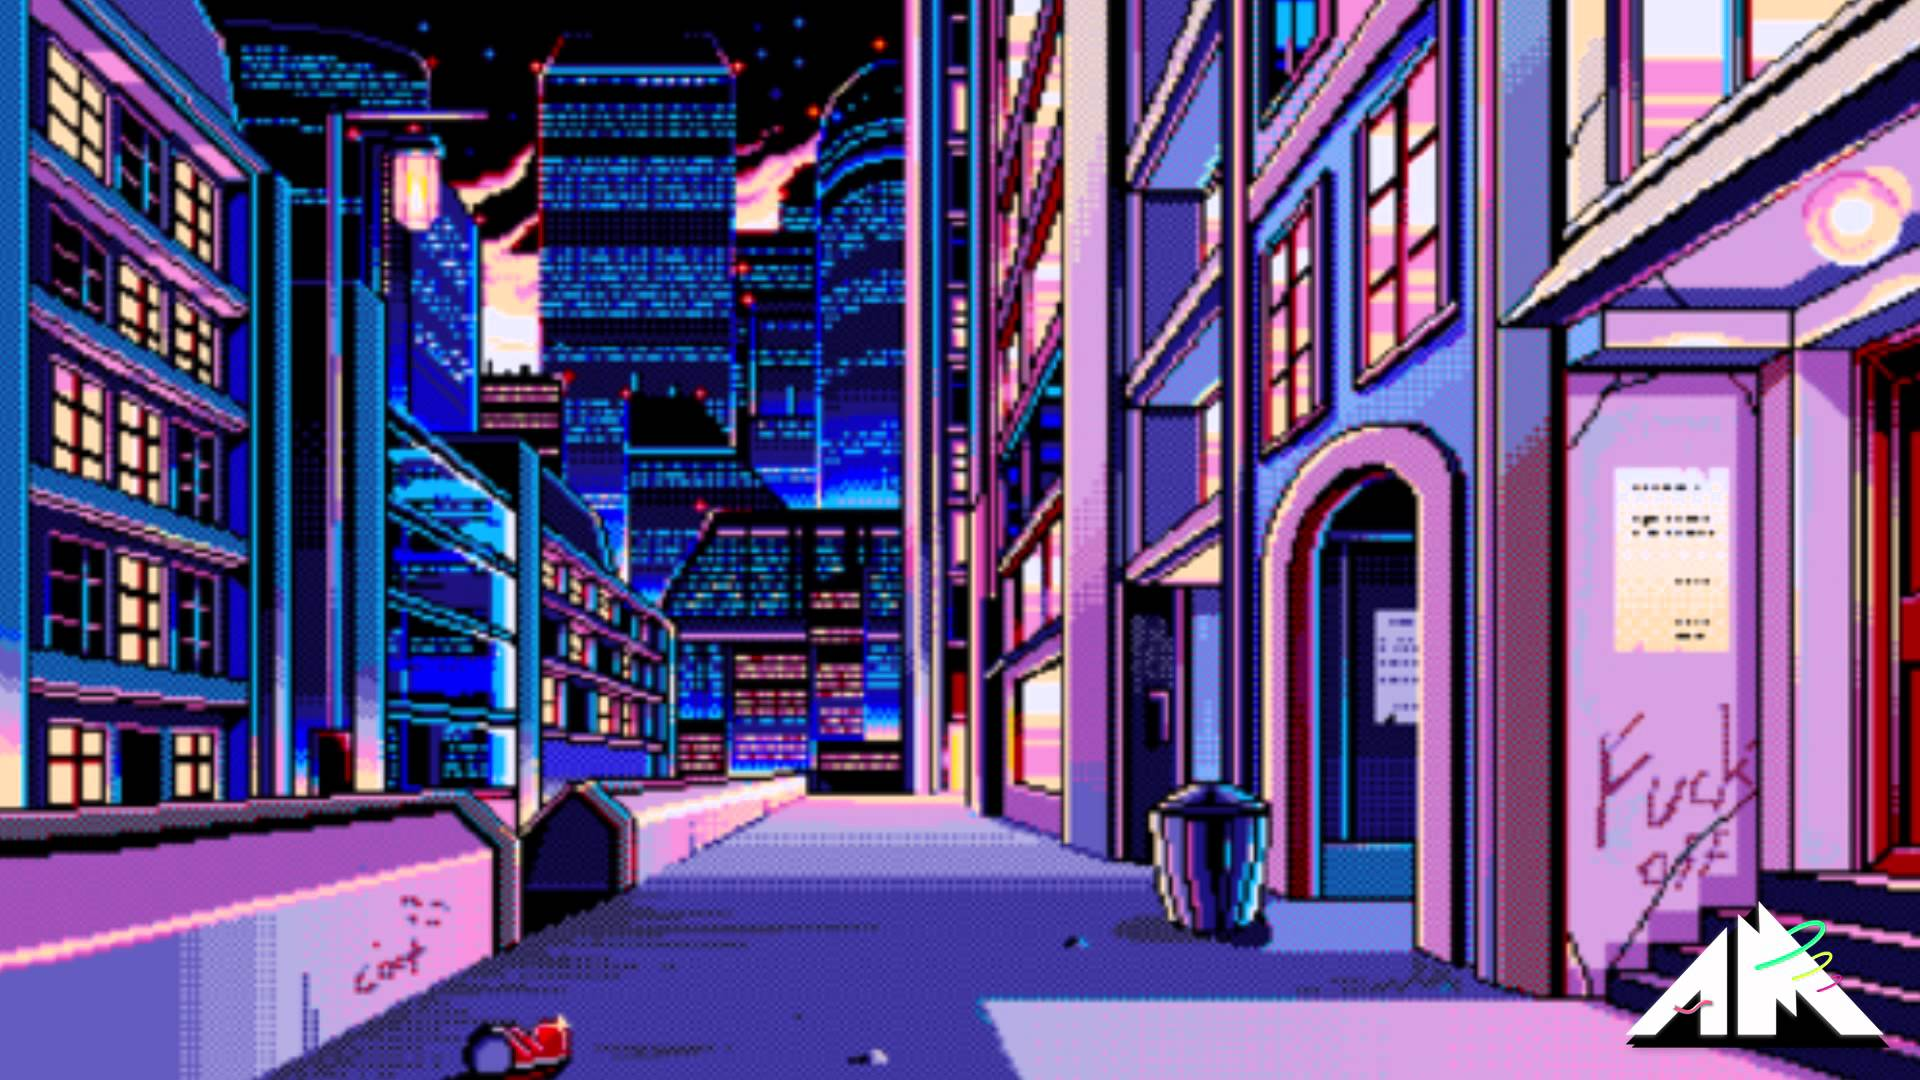 vaporwave is the only music that fits the feeling futuristic asian